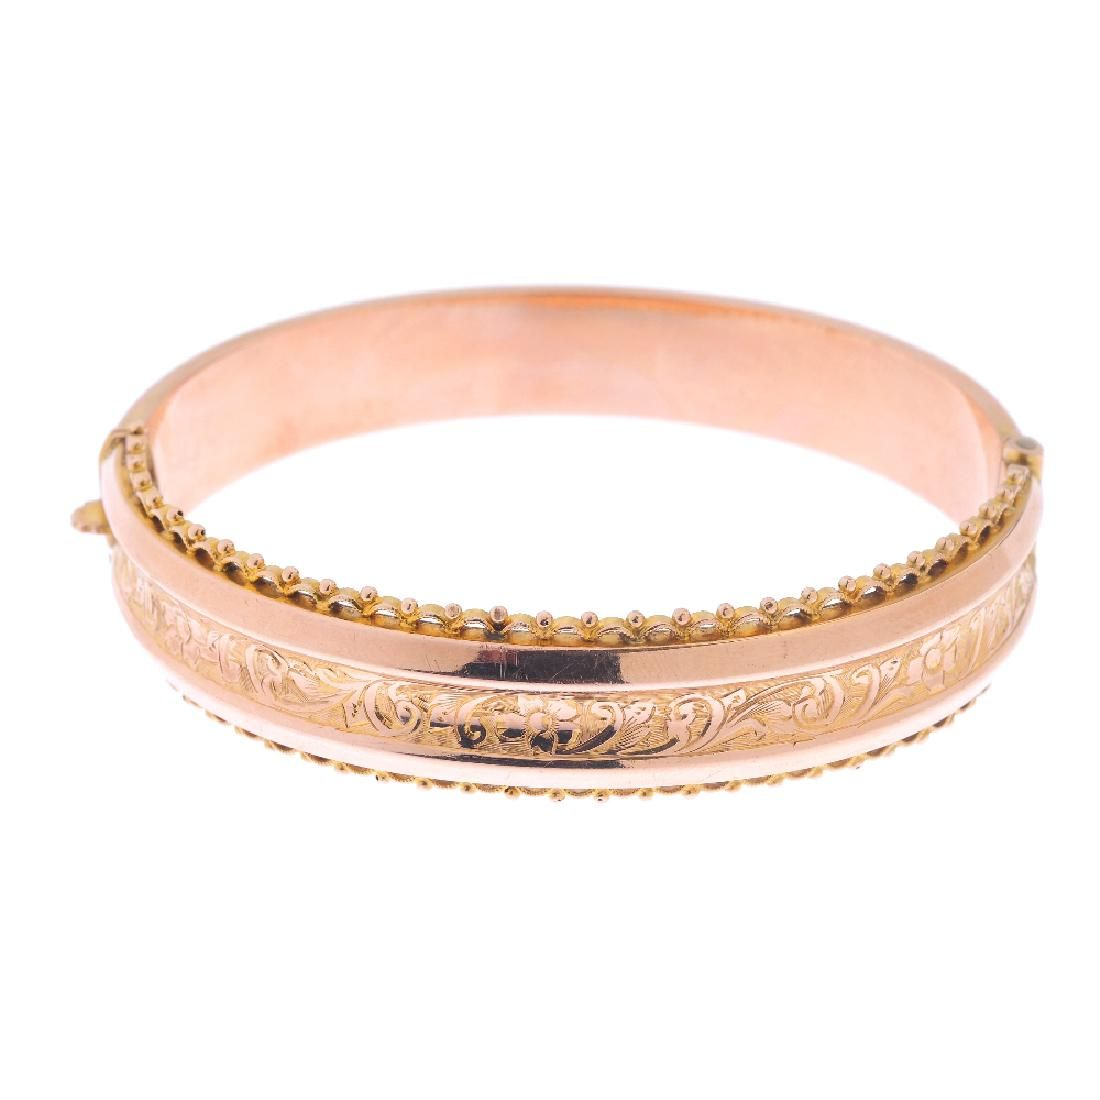 An early 20th century 9ct gold hinged bangle. The